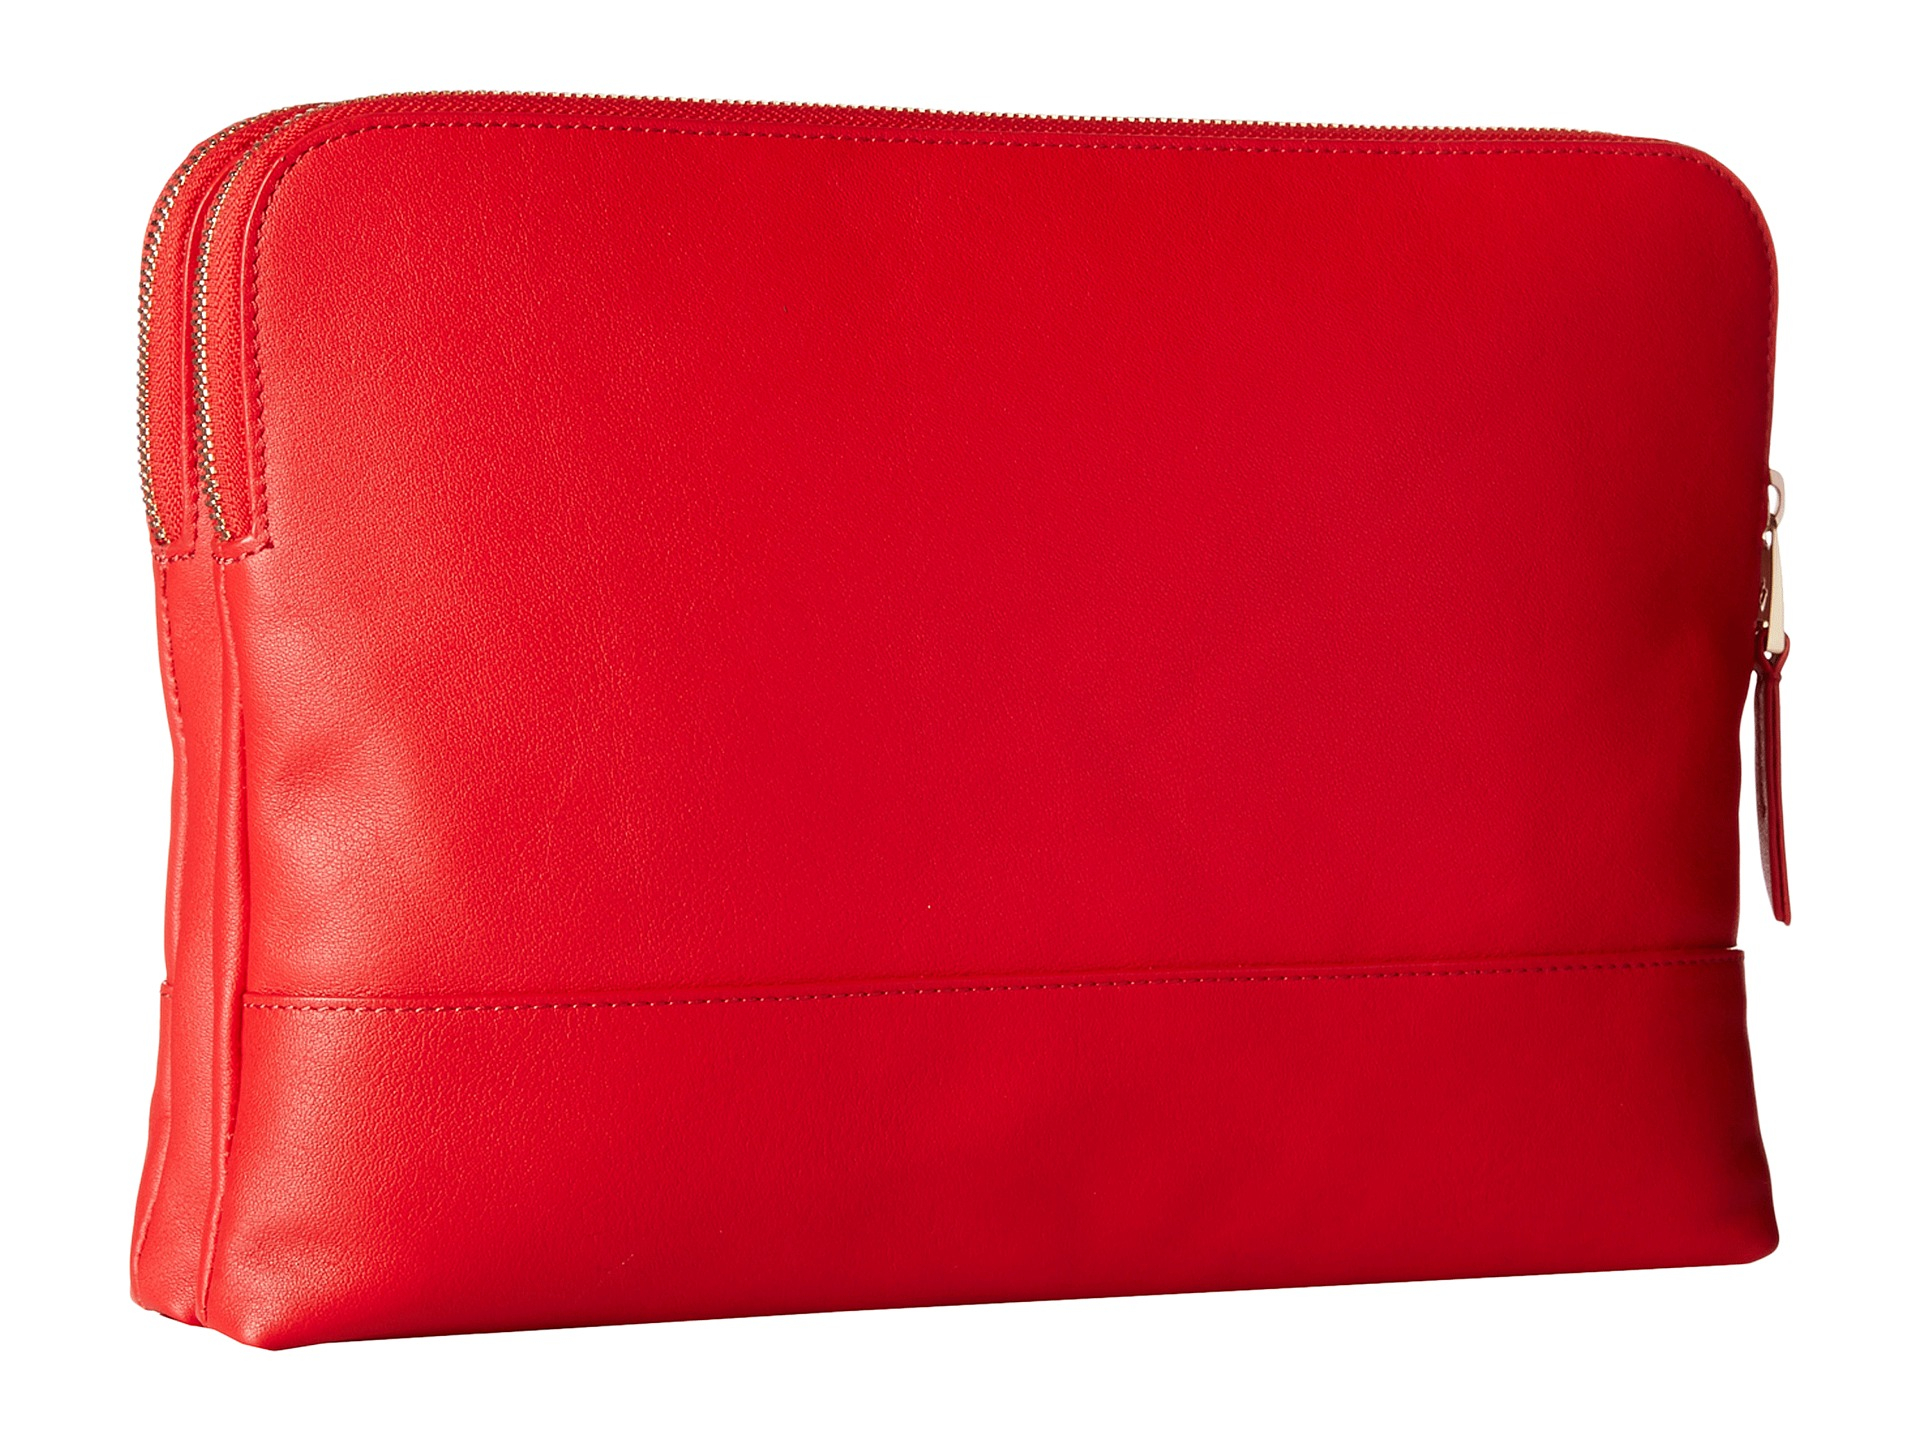 3578d06273 Lyst - Knomo Davies Leather Crossbody Bag in Red